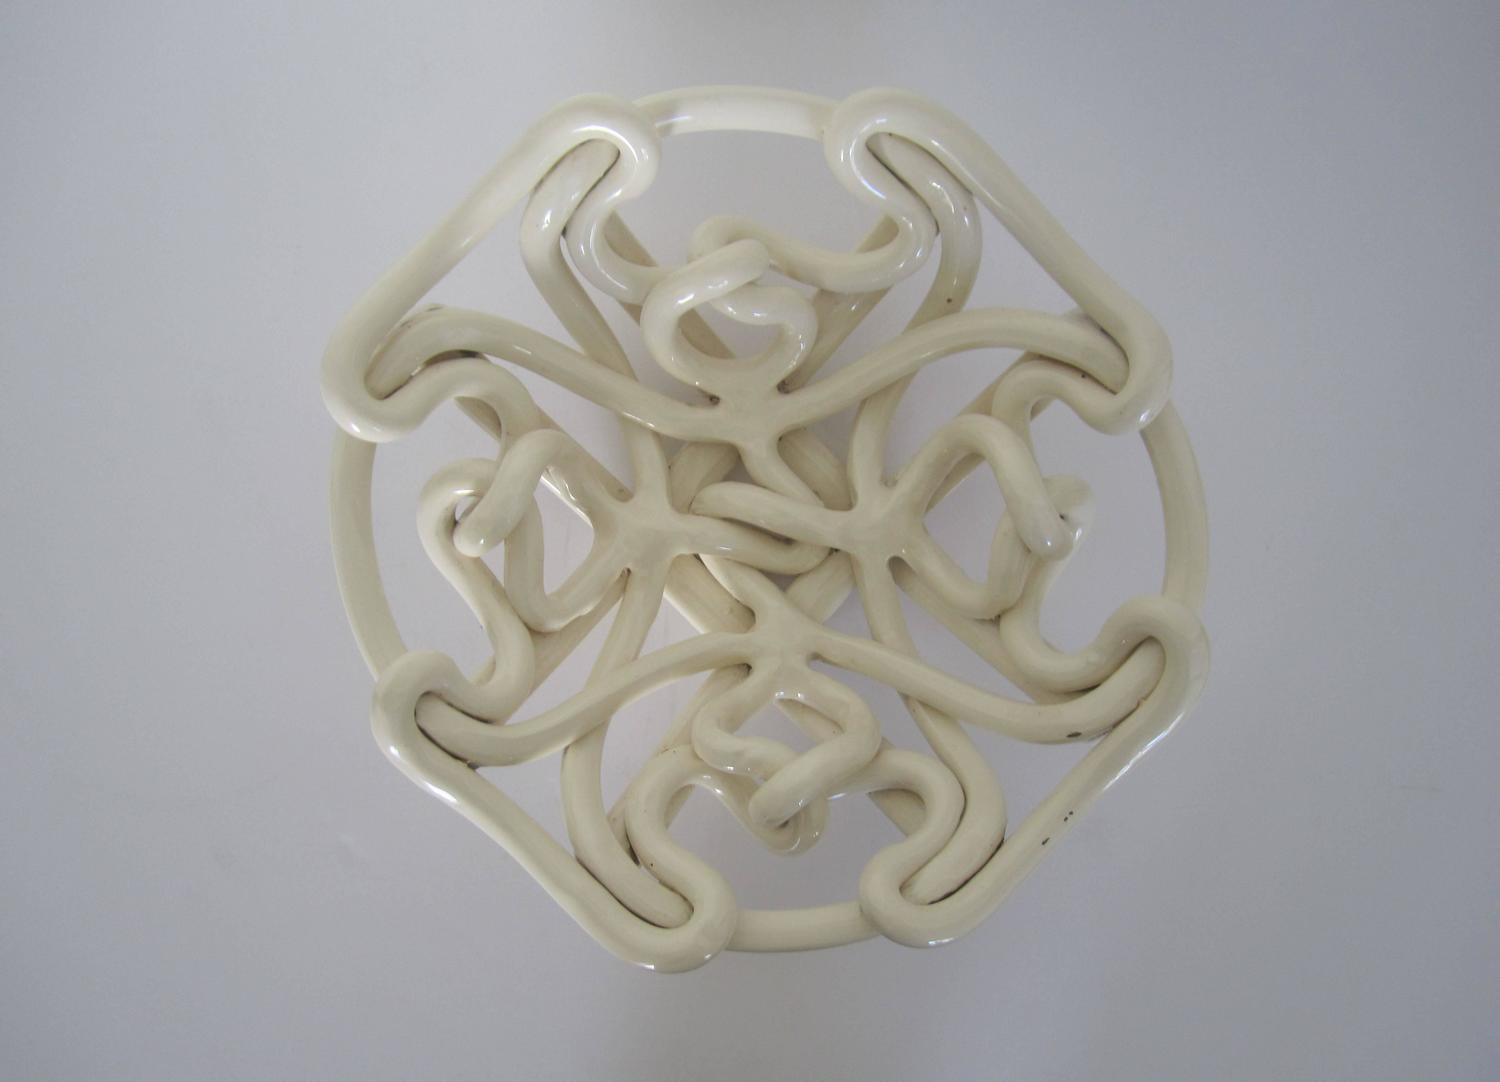 White woven glazed ceramic centerpiece bowl for sale at